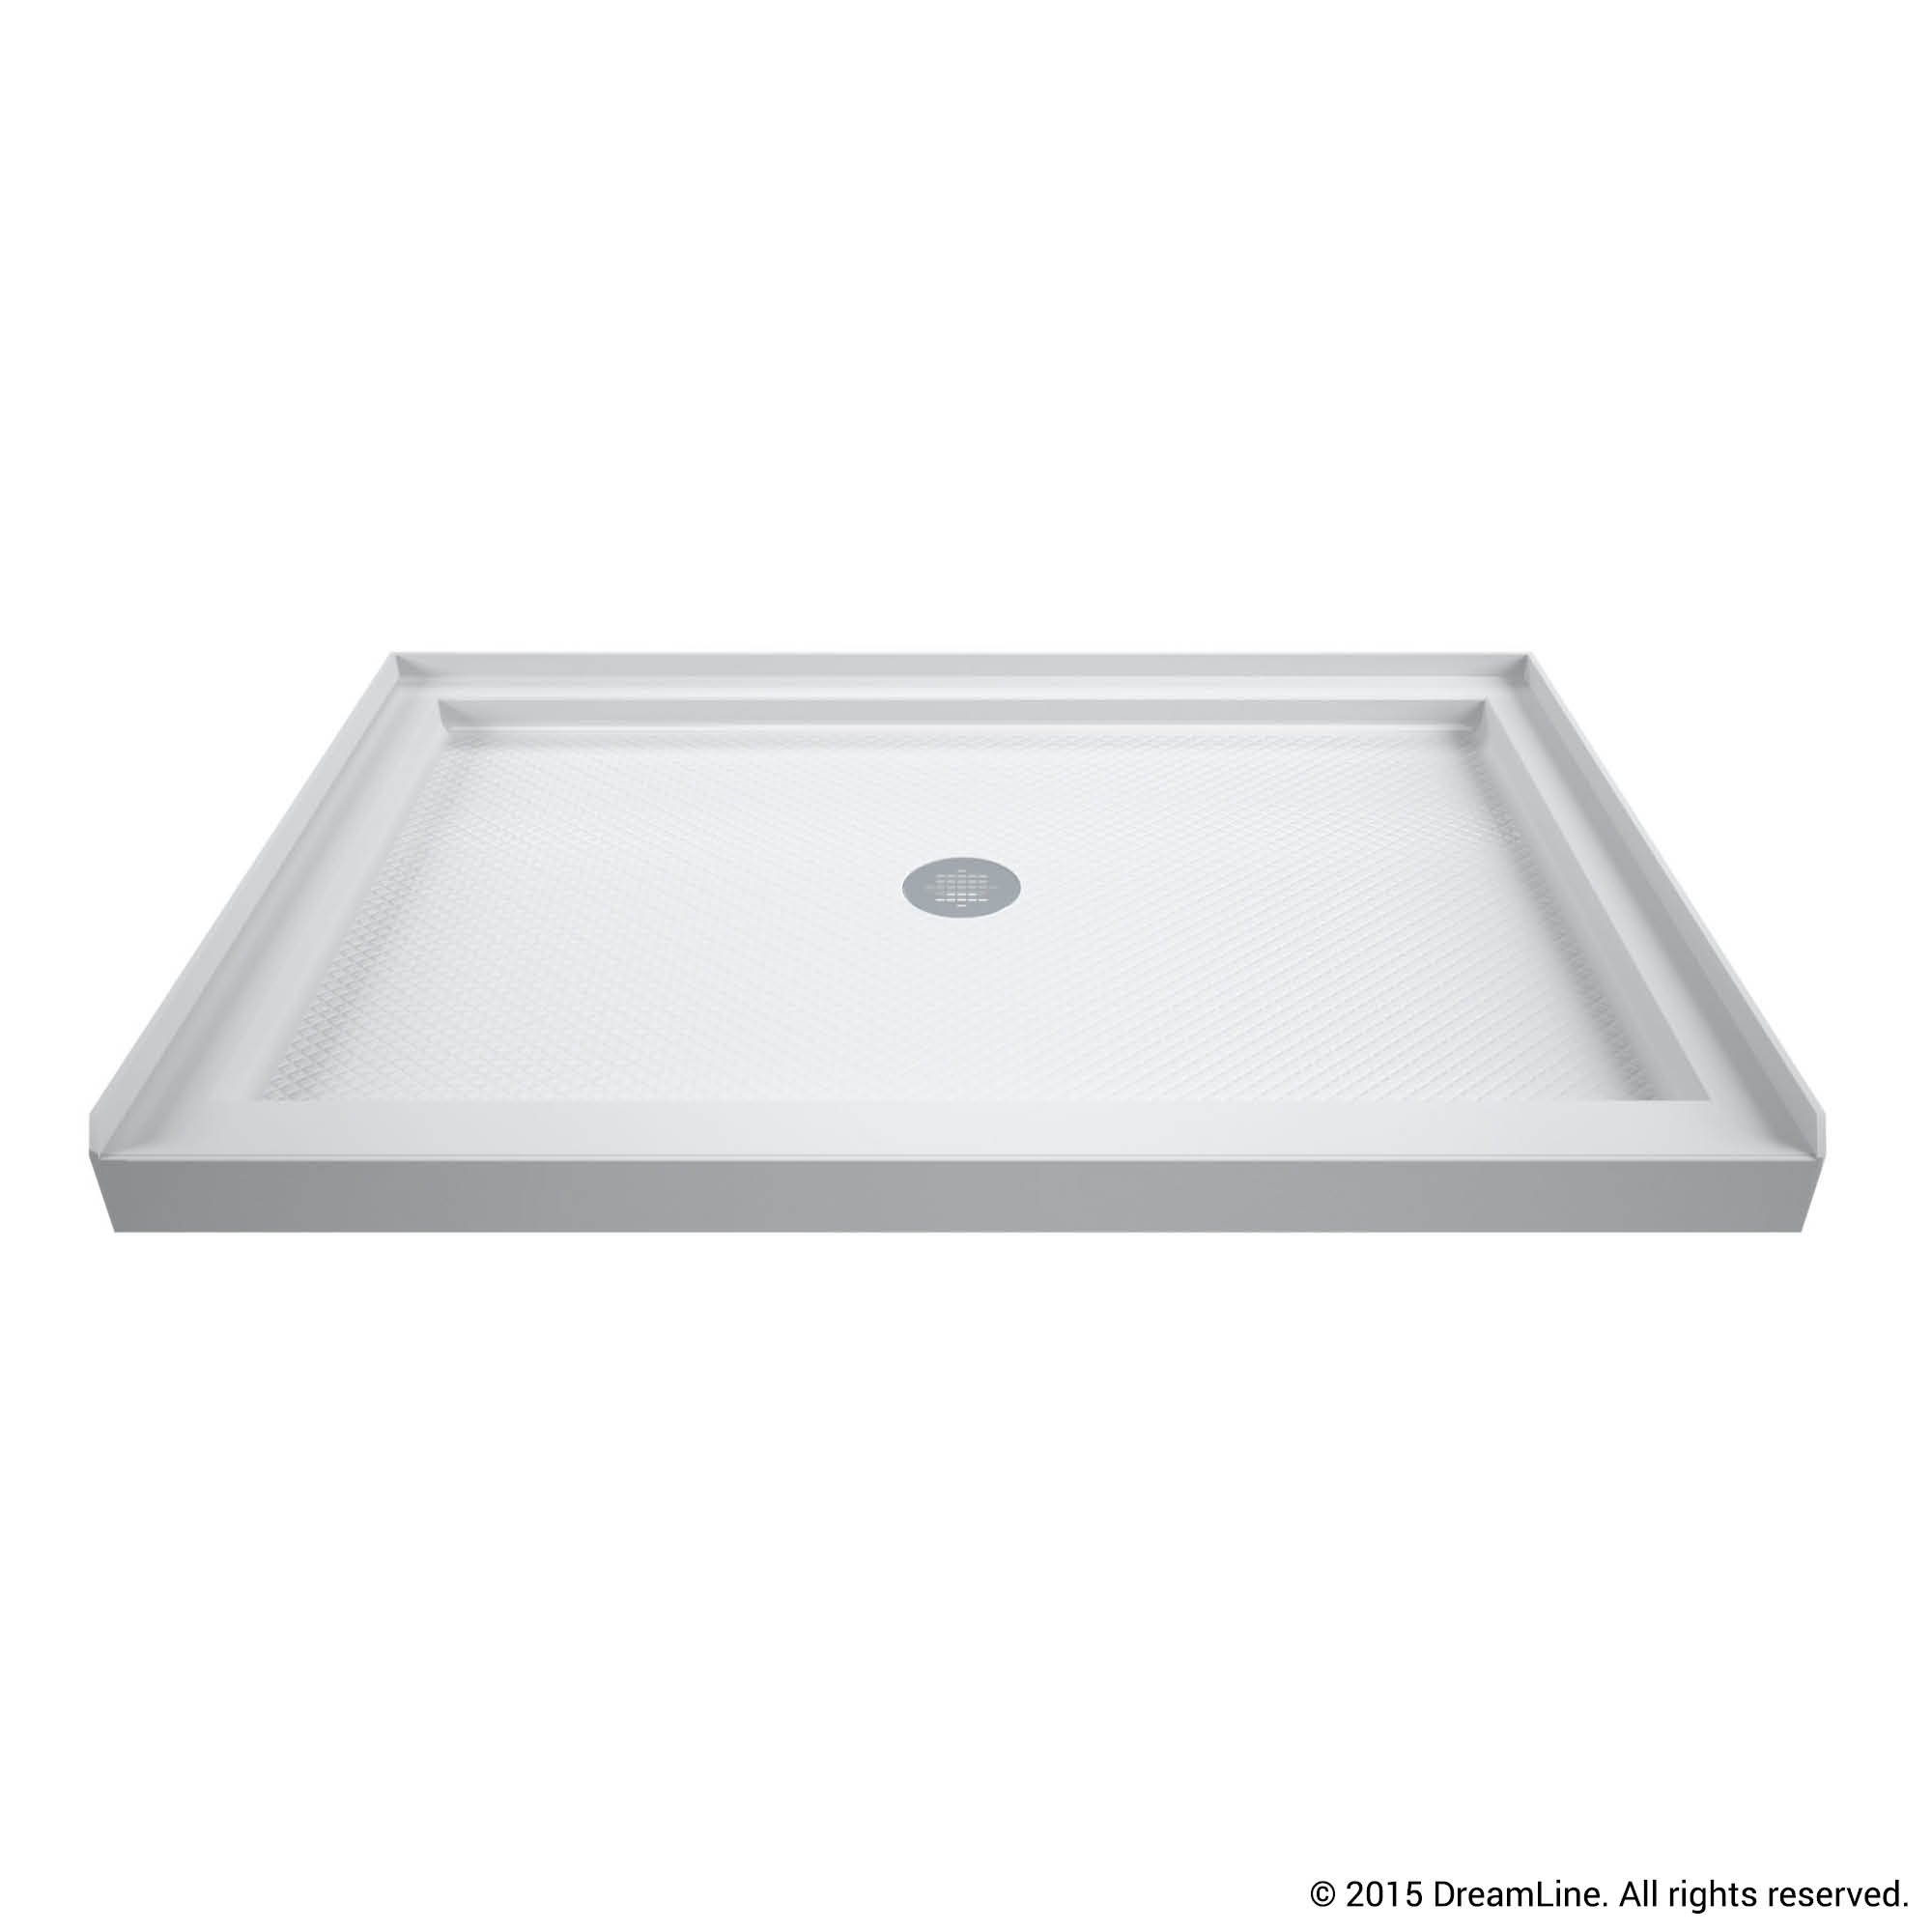 DreamLine SlimLine 36 in. x 48 in. Single Threshold Shower Base, DLT-1136480 by DreamLine